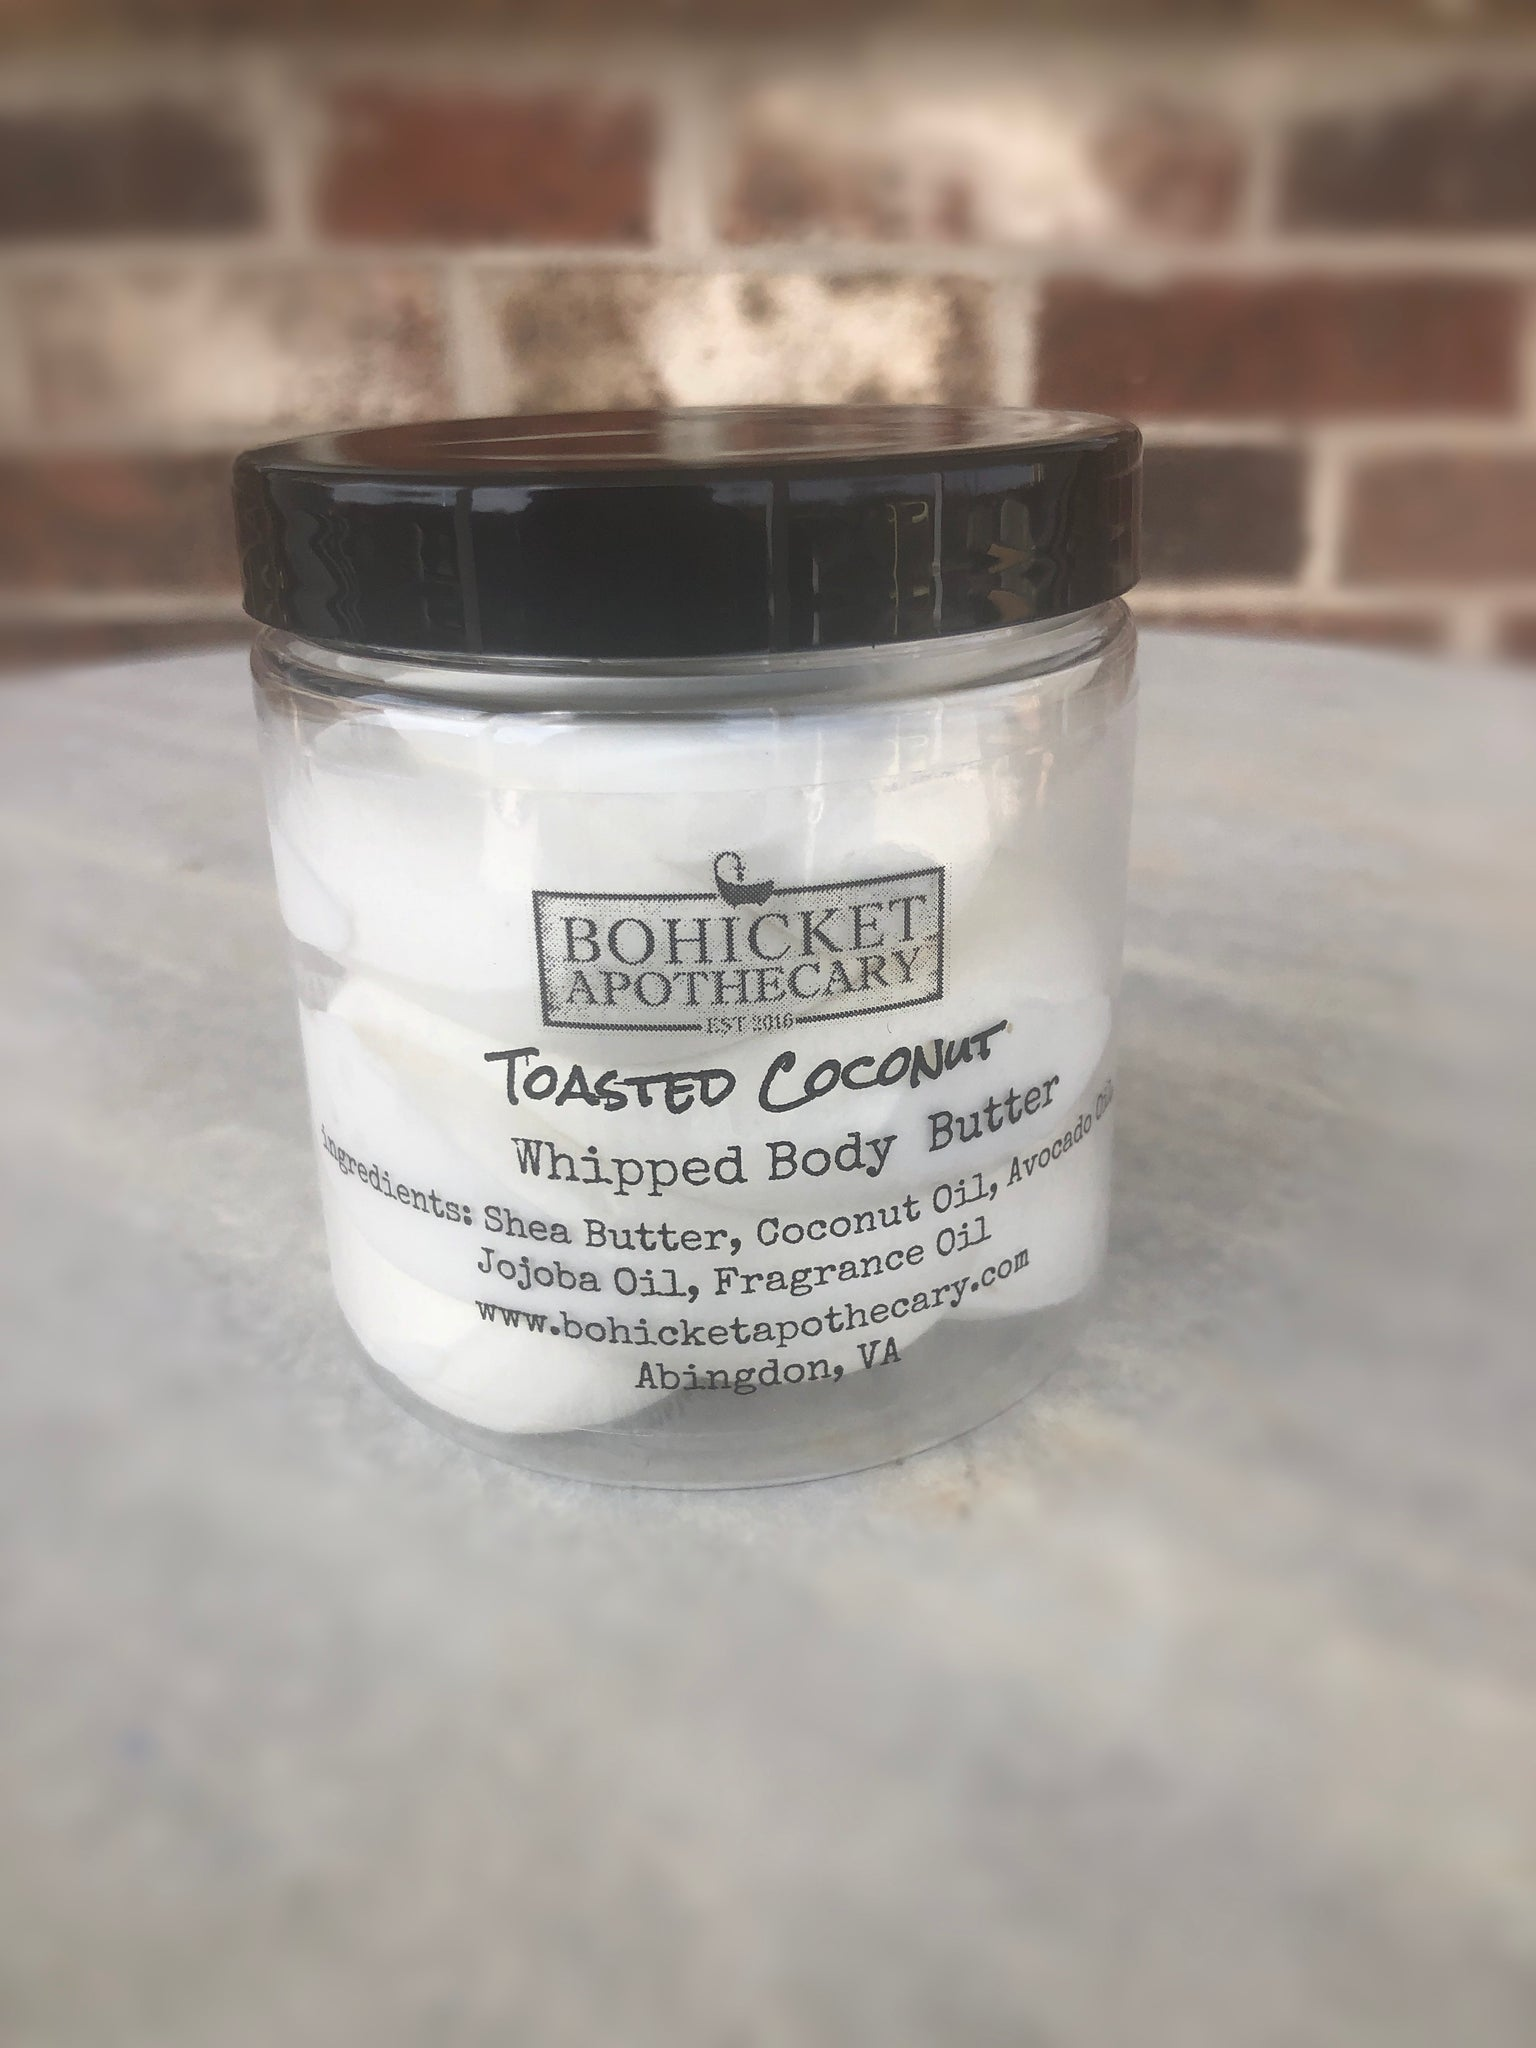 Toasted Coconut Whipped Body Butter